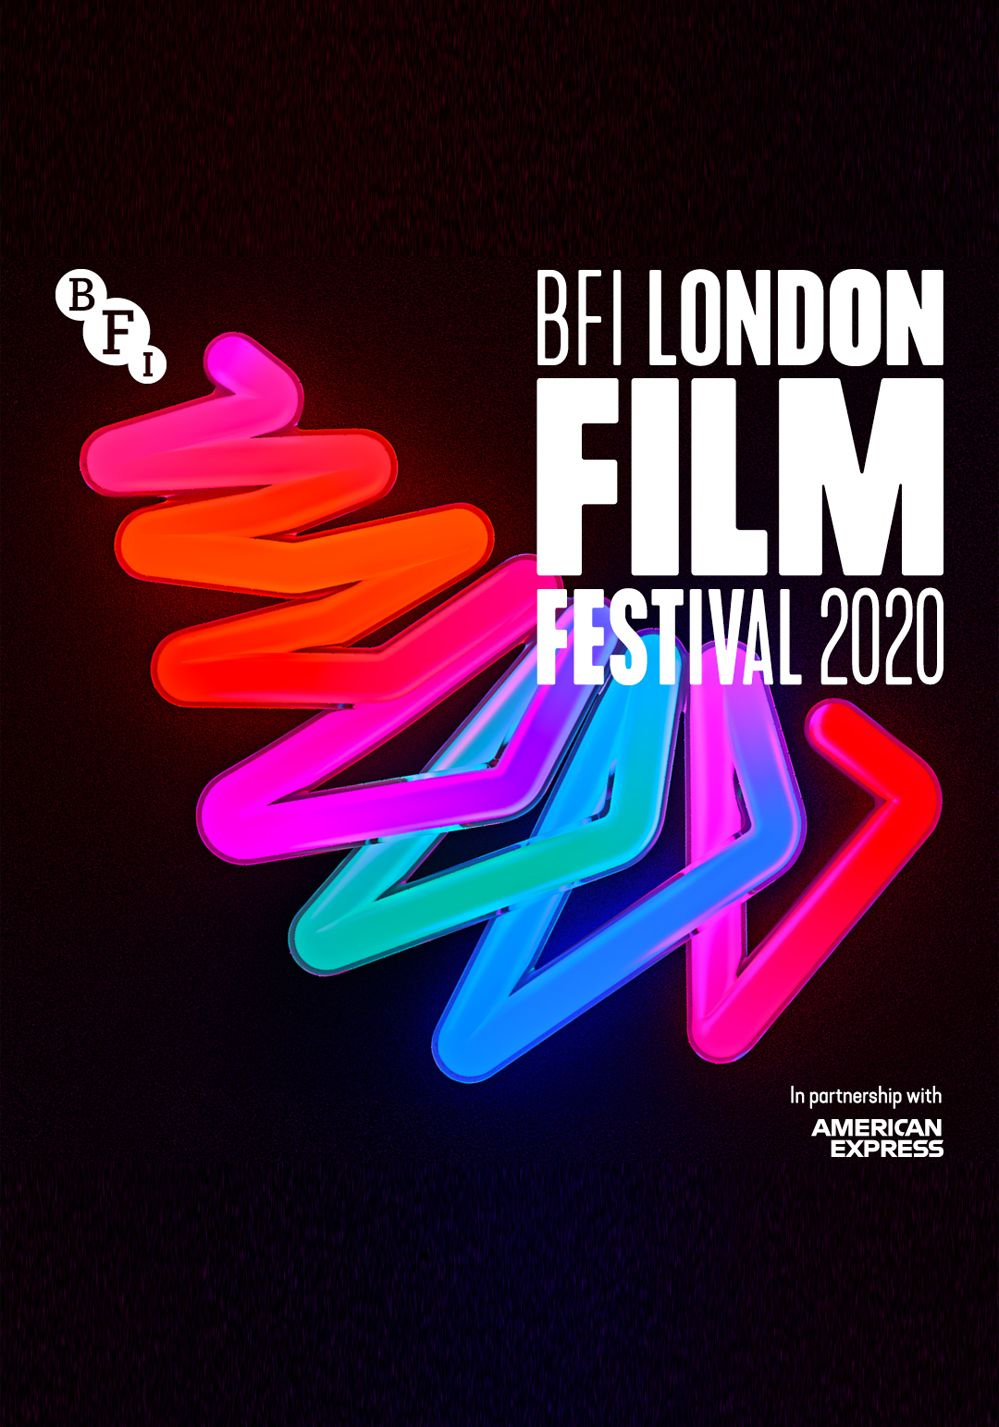 64th BFI London Film Festival 2020 Poster